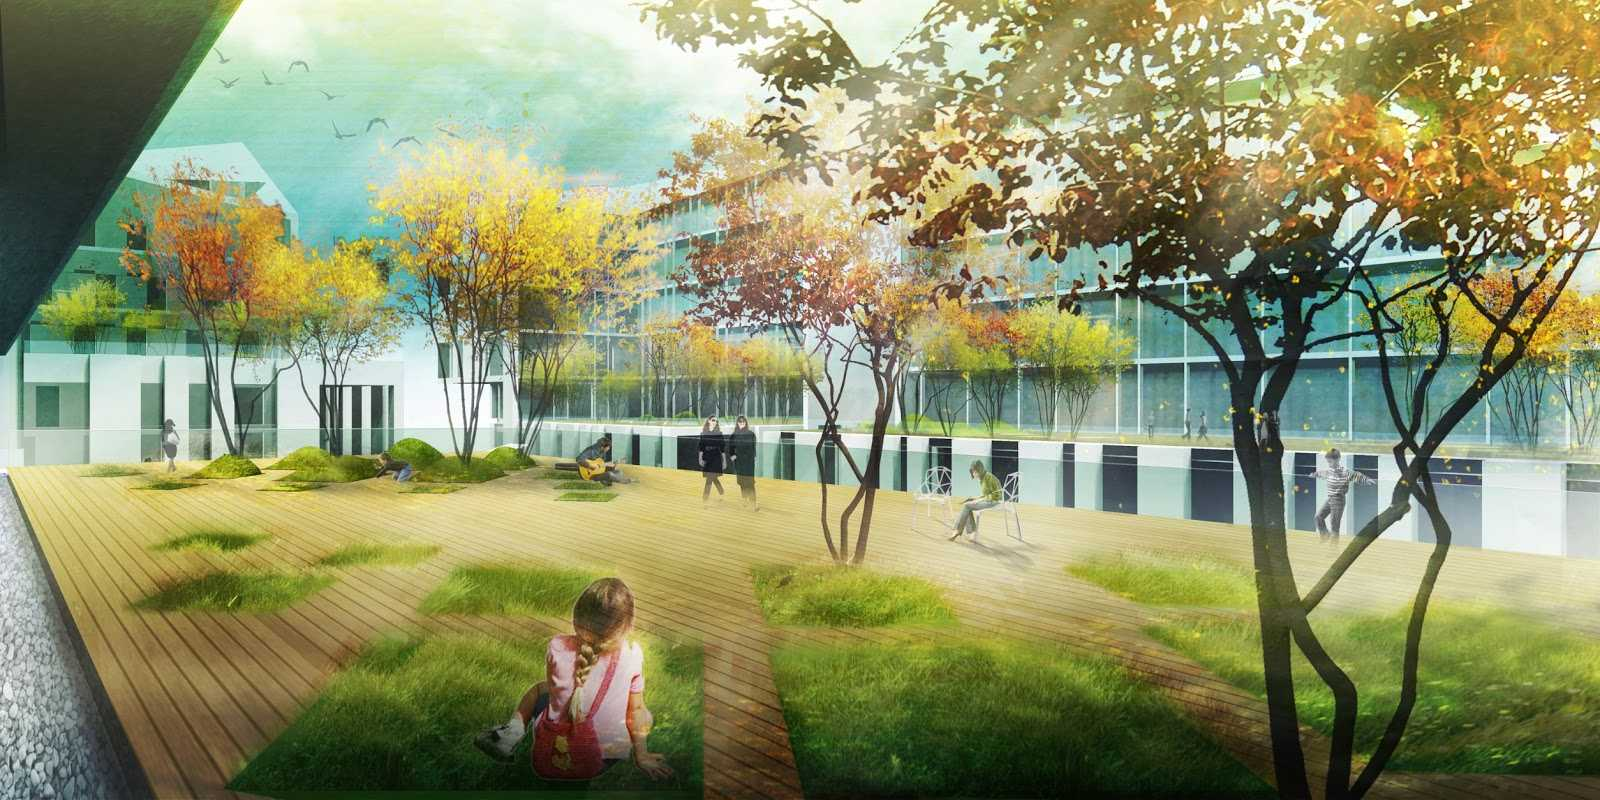 Straume design competition by haptic architects for Landscape design contest